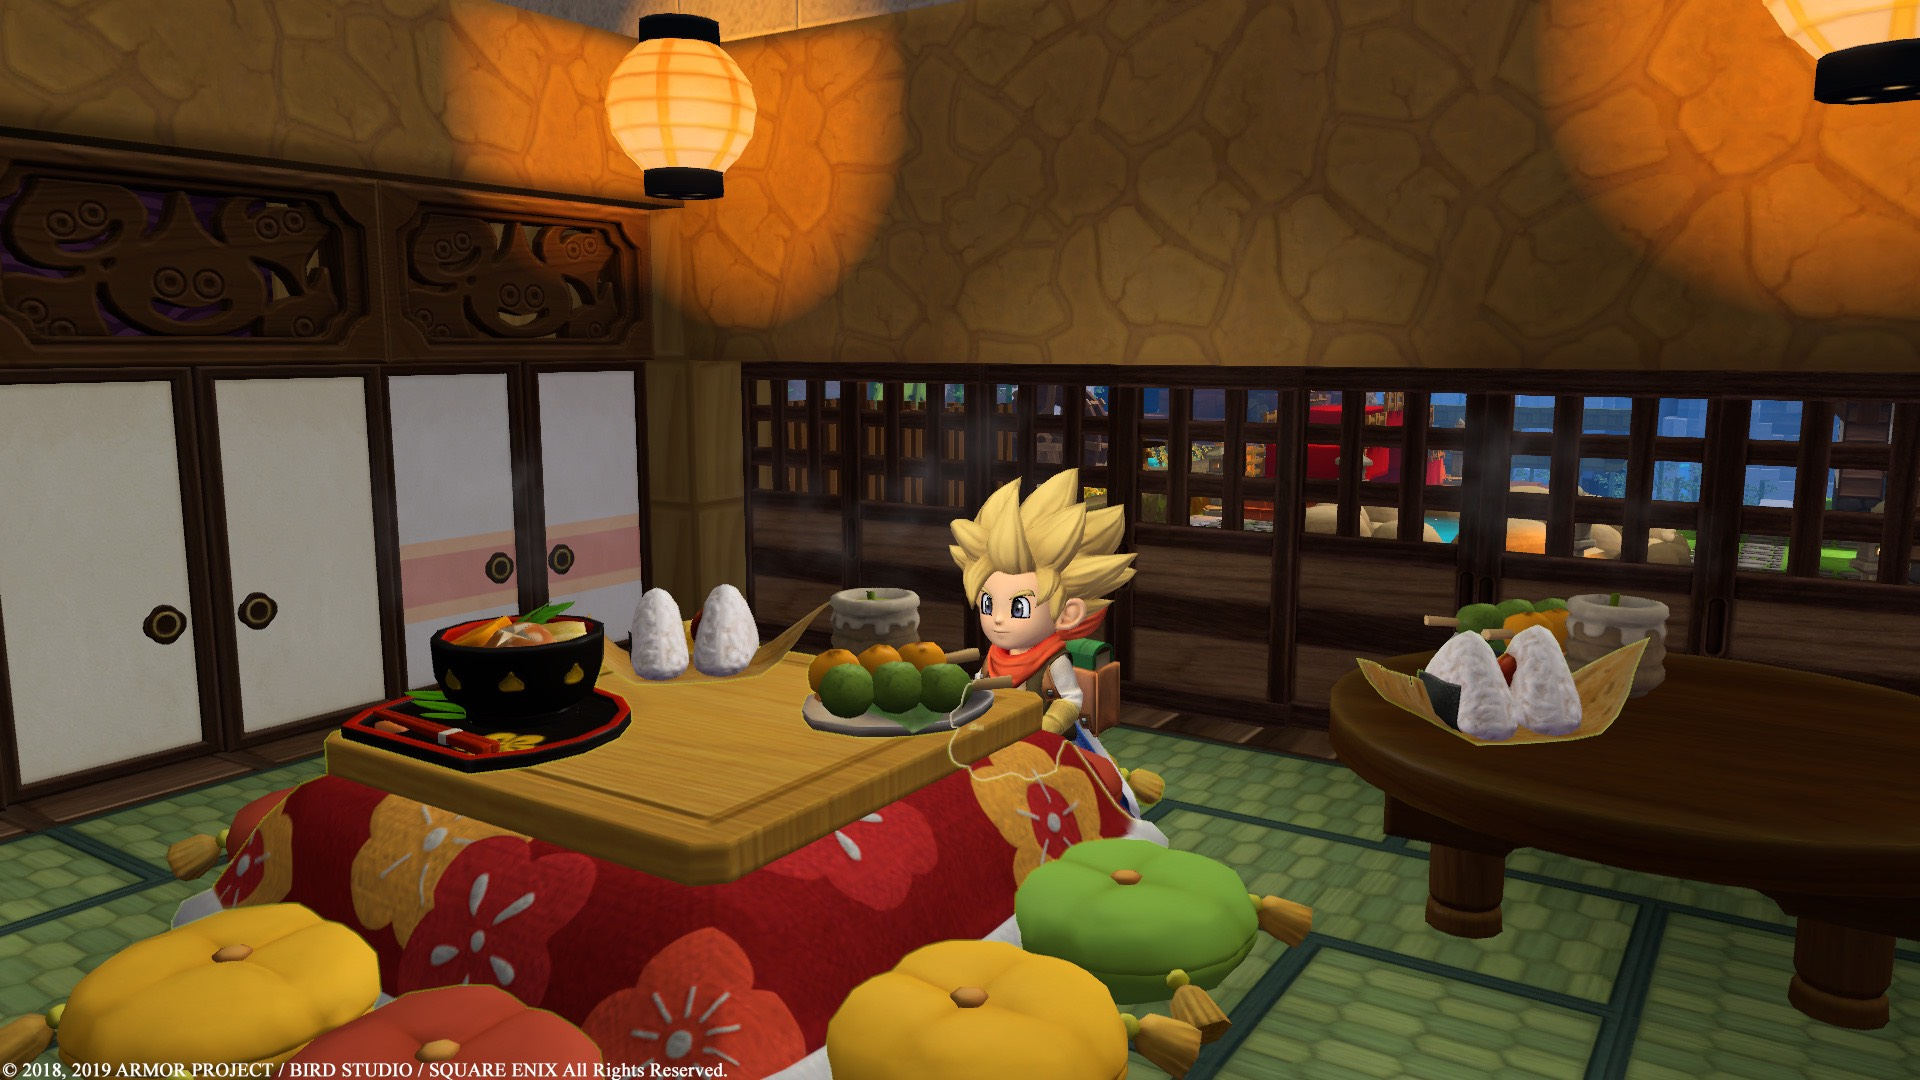 Dragon Quest Builders 2 screenshot of a blonde spiky haired kid sitting in an Asian-inspired home with sliding wood doors and pillows around a table.